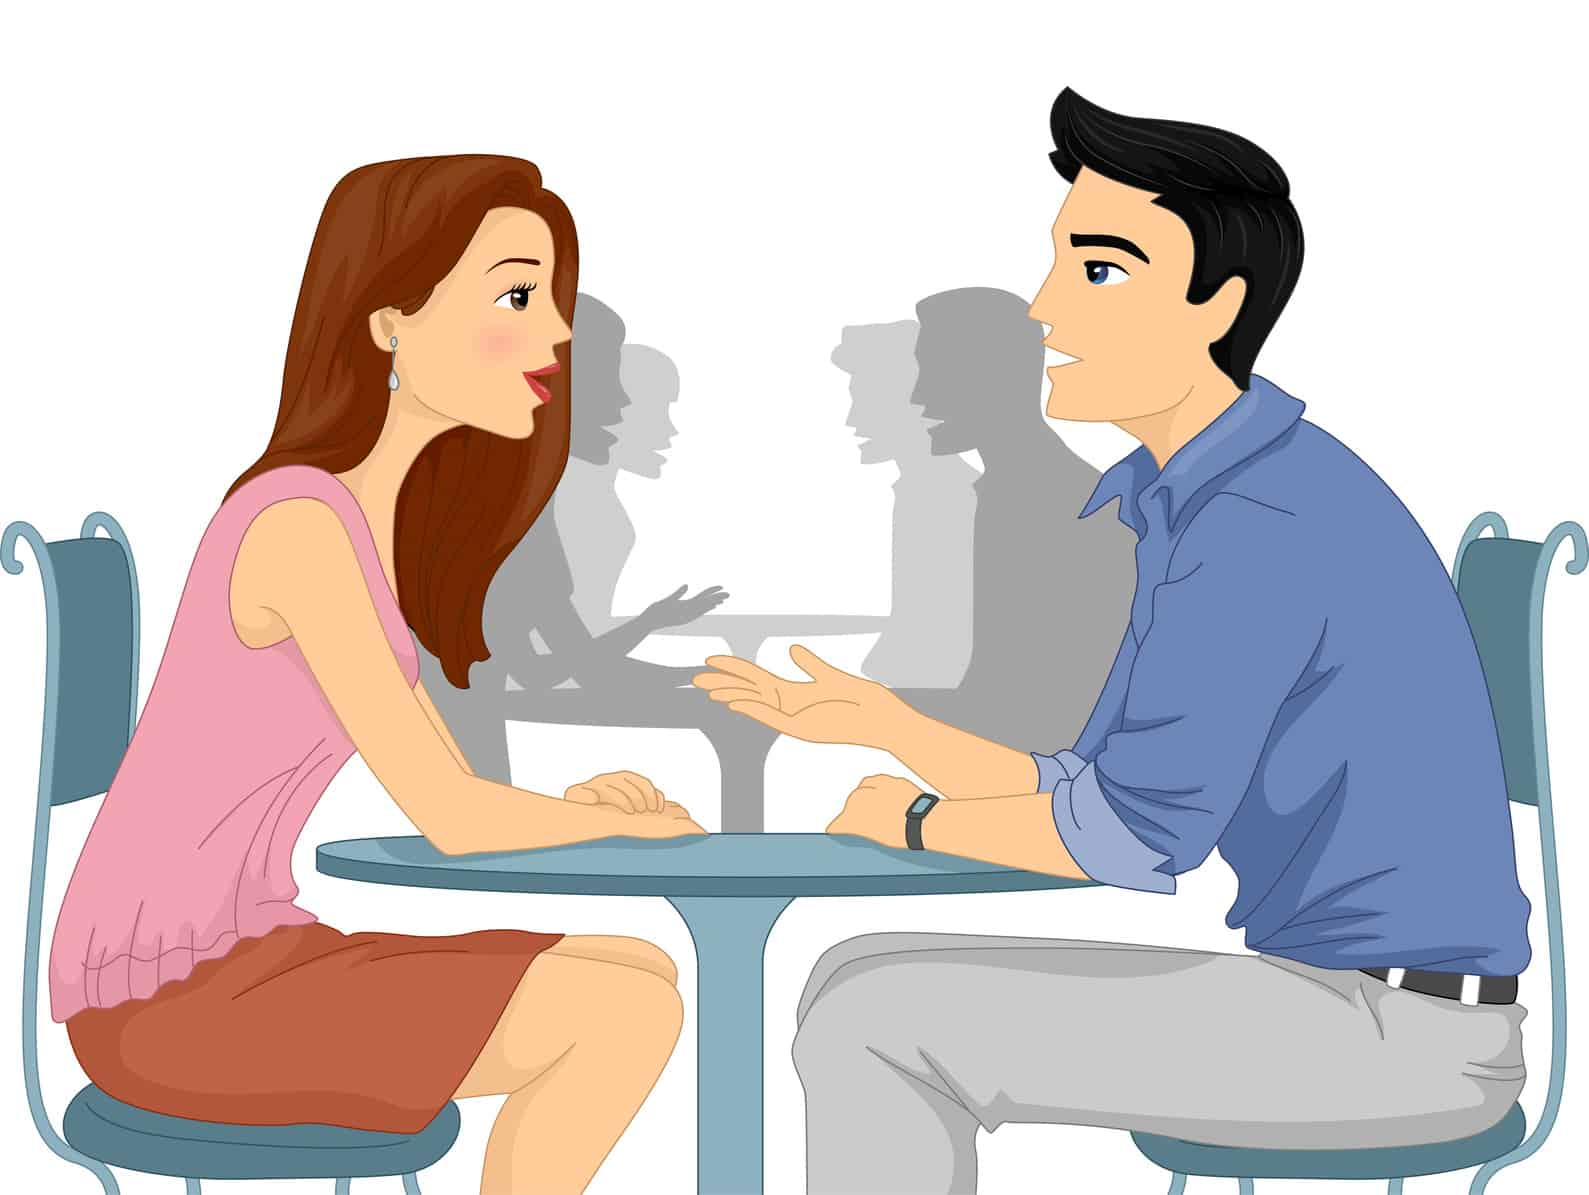 best questions for speed dating Eharmony dating experts reveal the best first date questions to help ease any anxiety and make sure the conversation flows naturally.